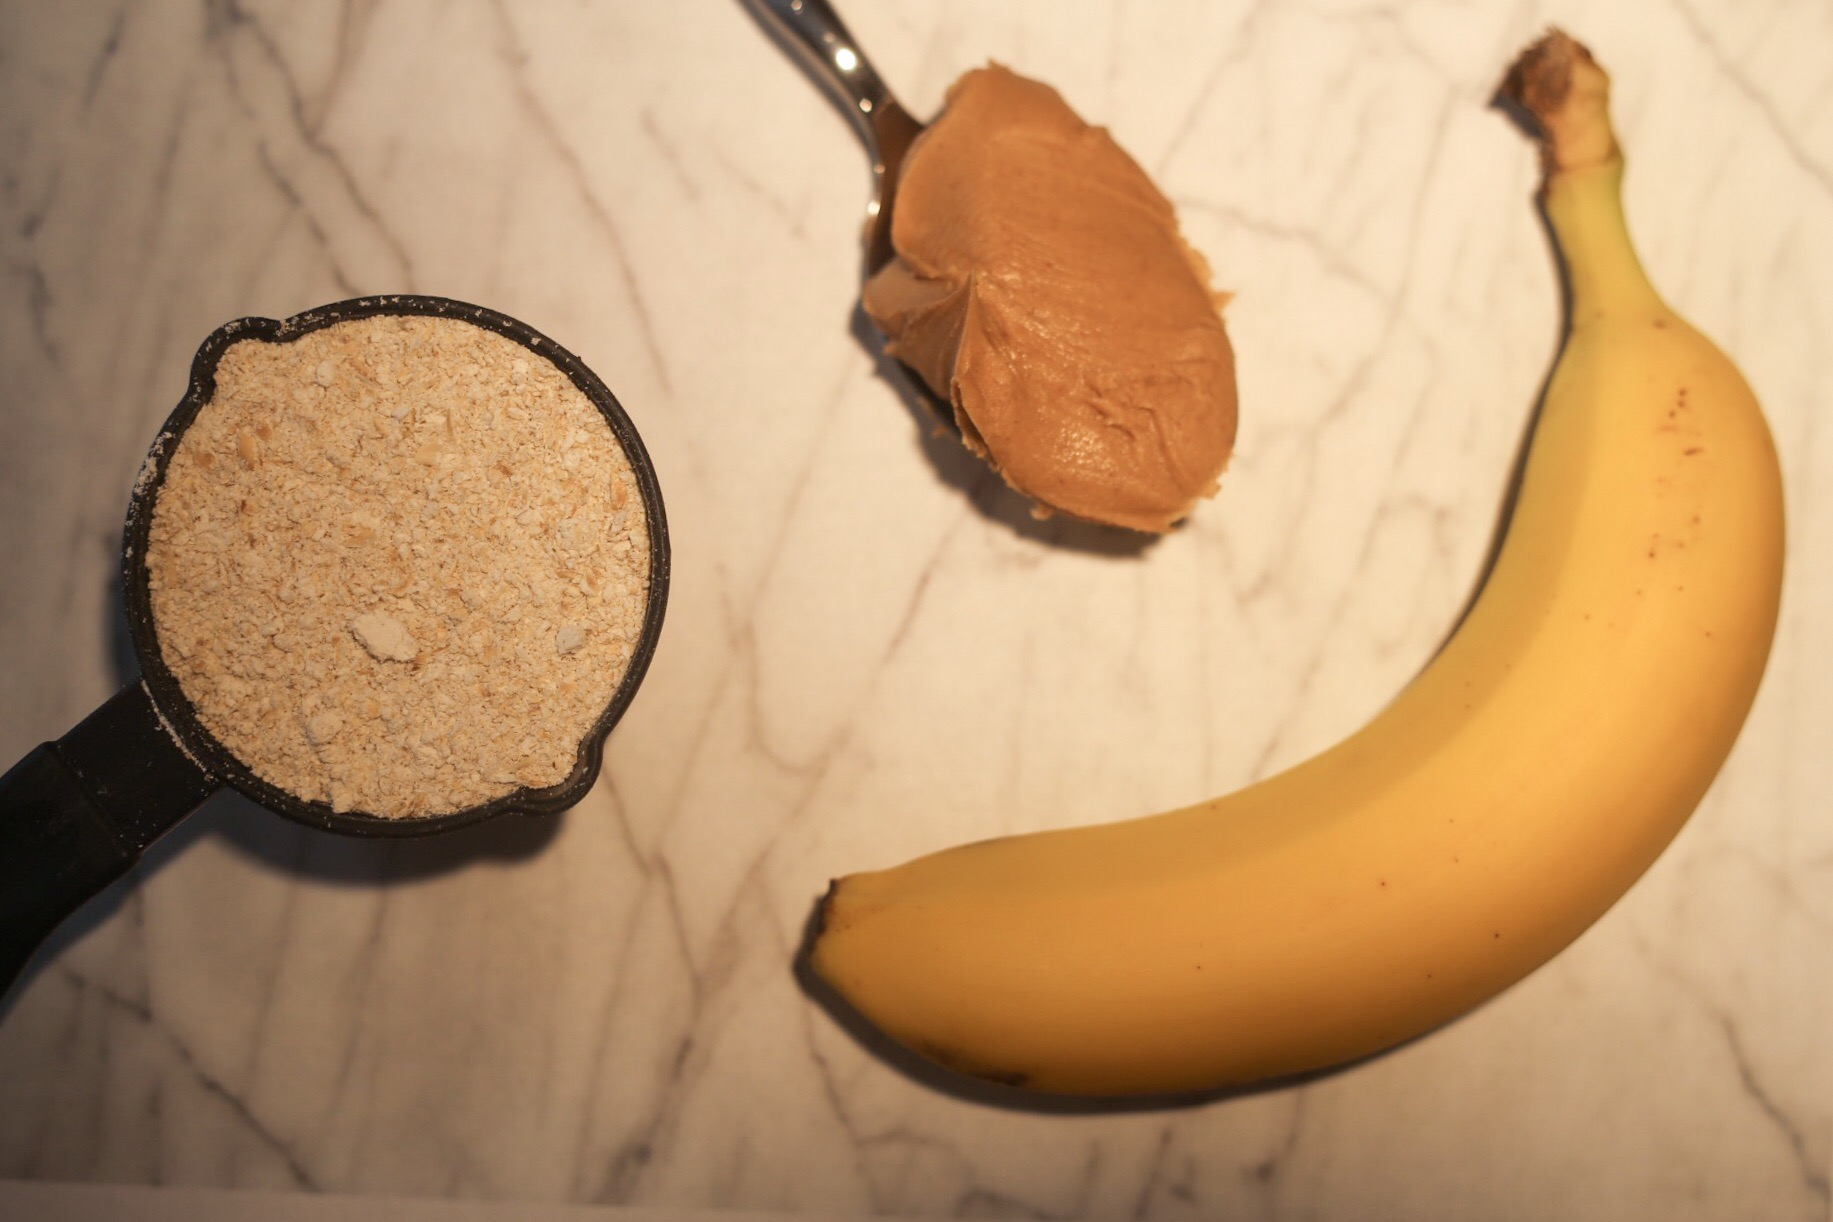 oats, peanut butter, and banana for dog treats